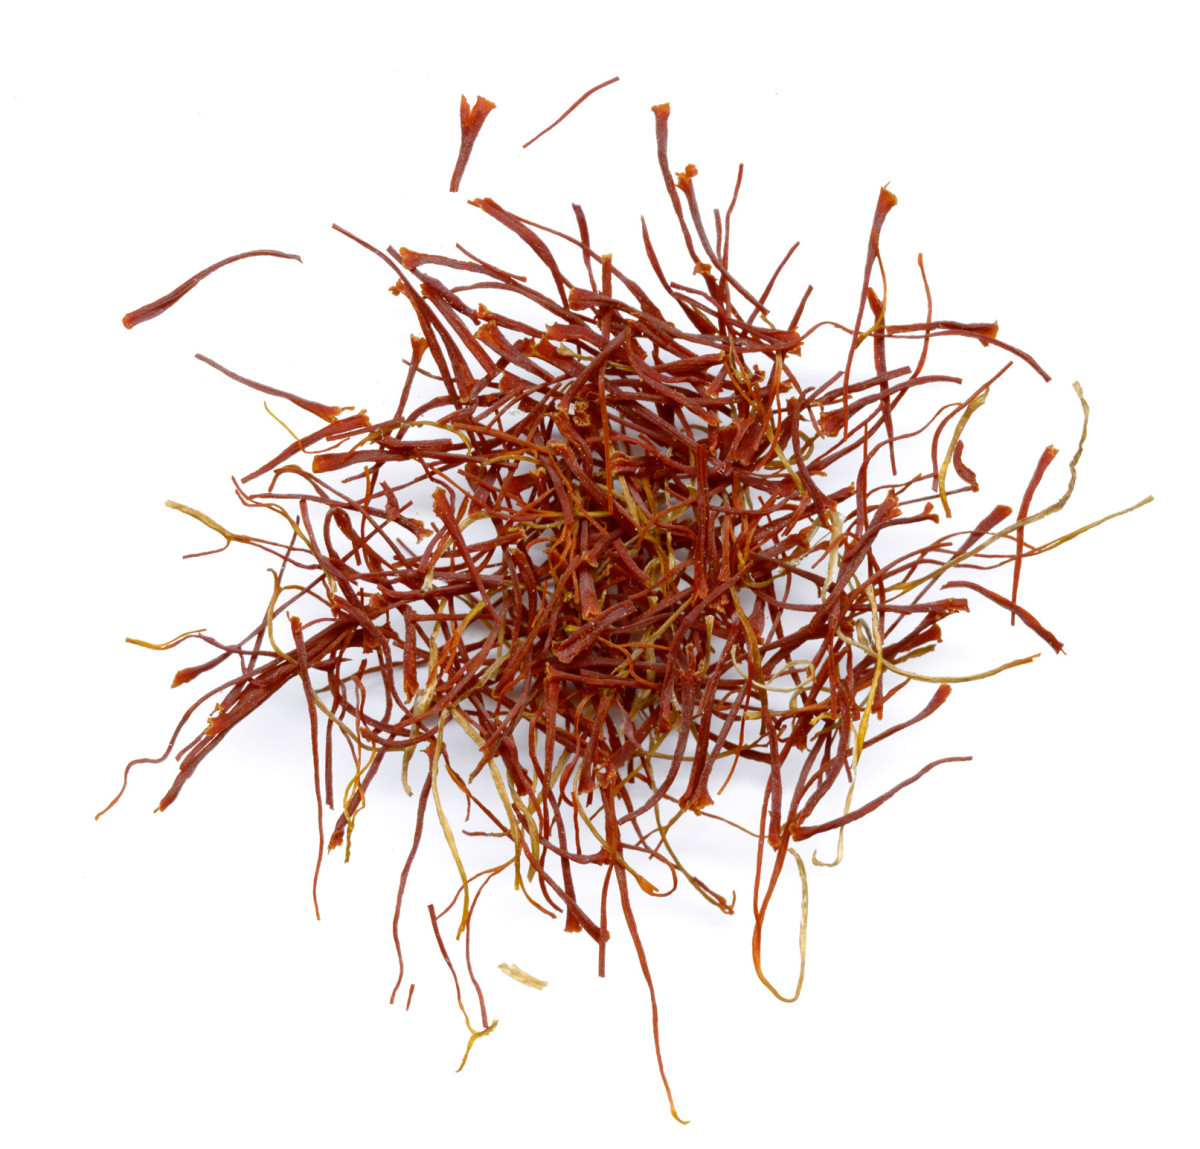 dried saffron threads